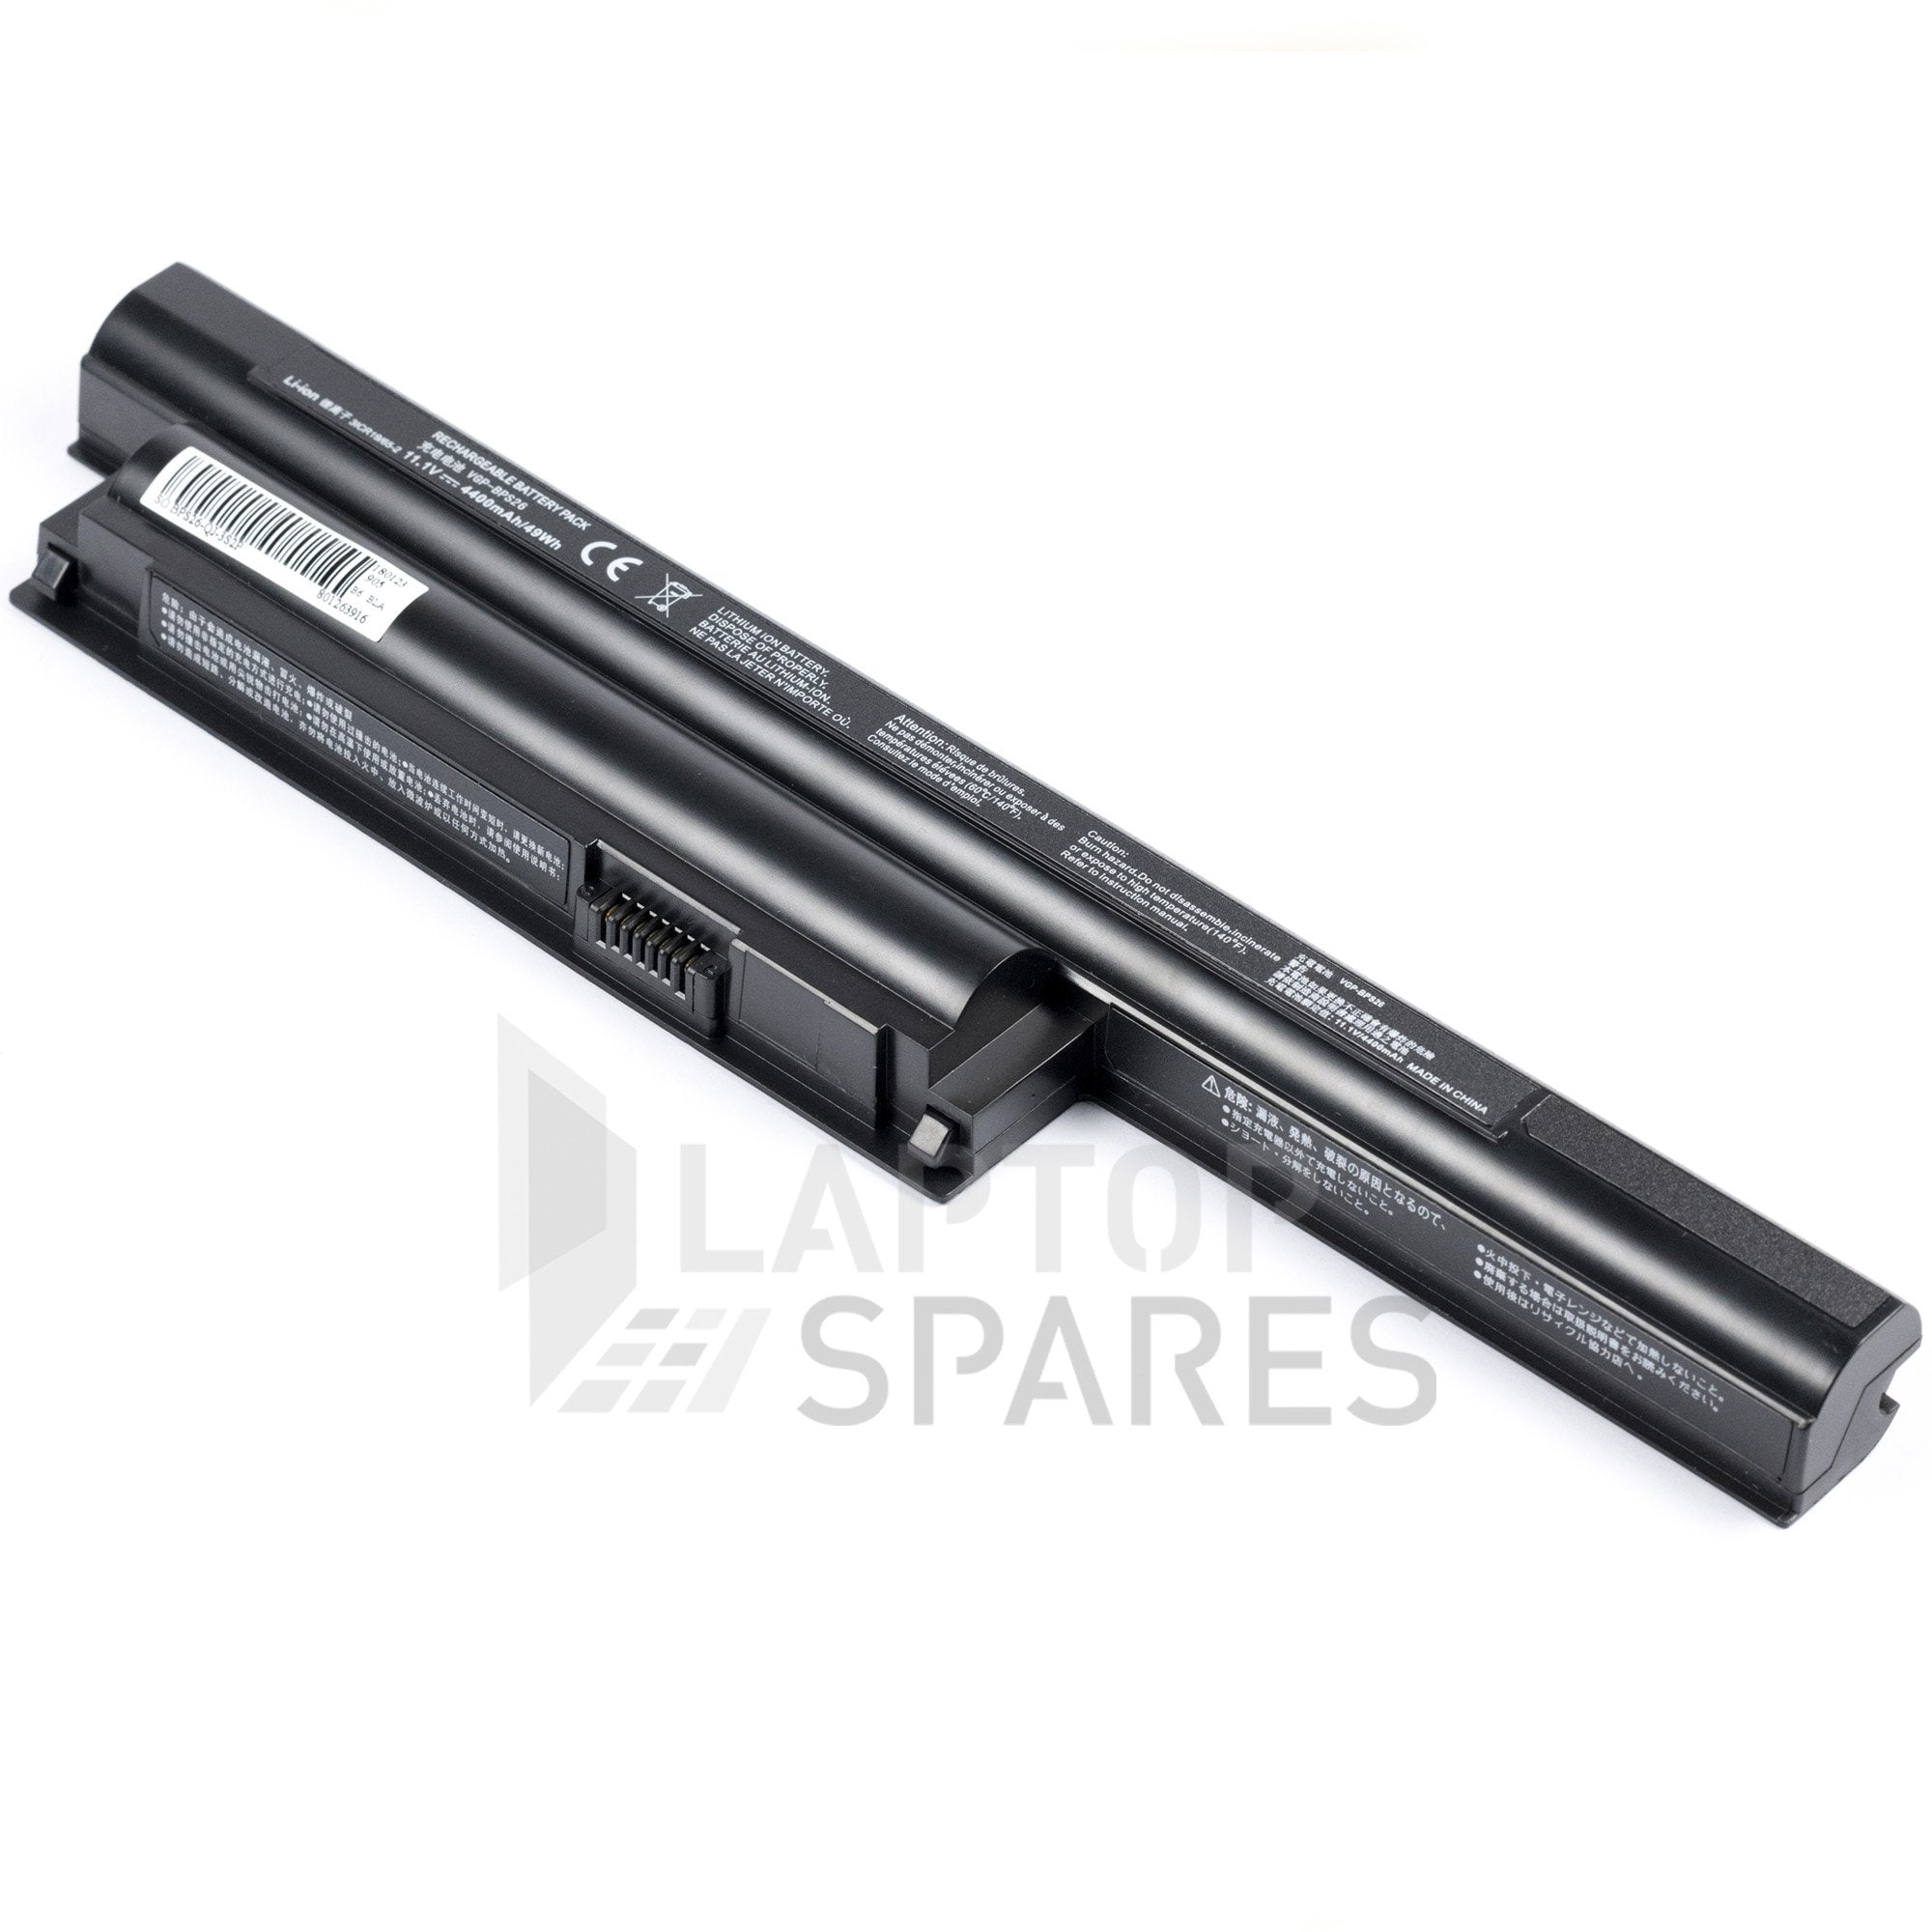 Sony Vaio VPC EH38FJ/W EH38FN/L 4400mAh 6 Cell Battery